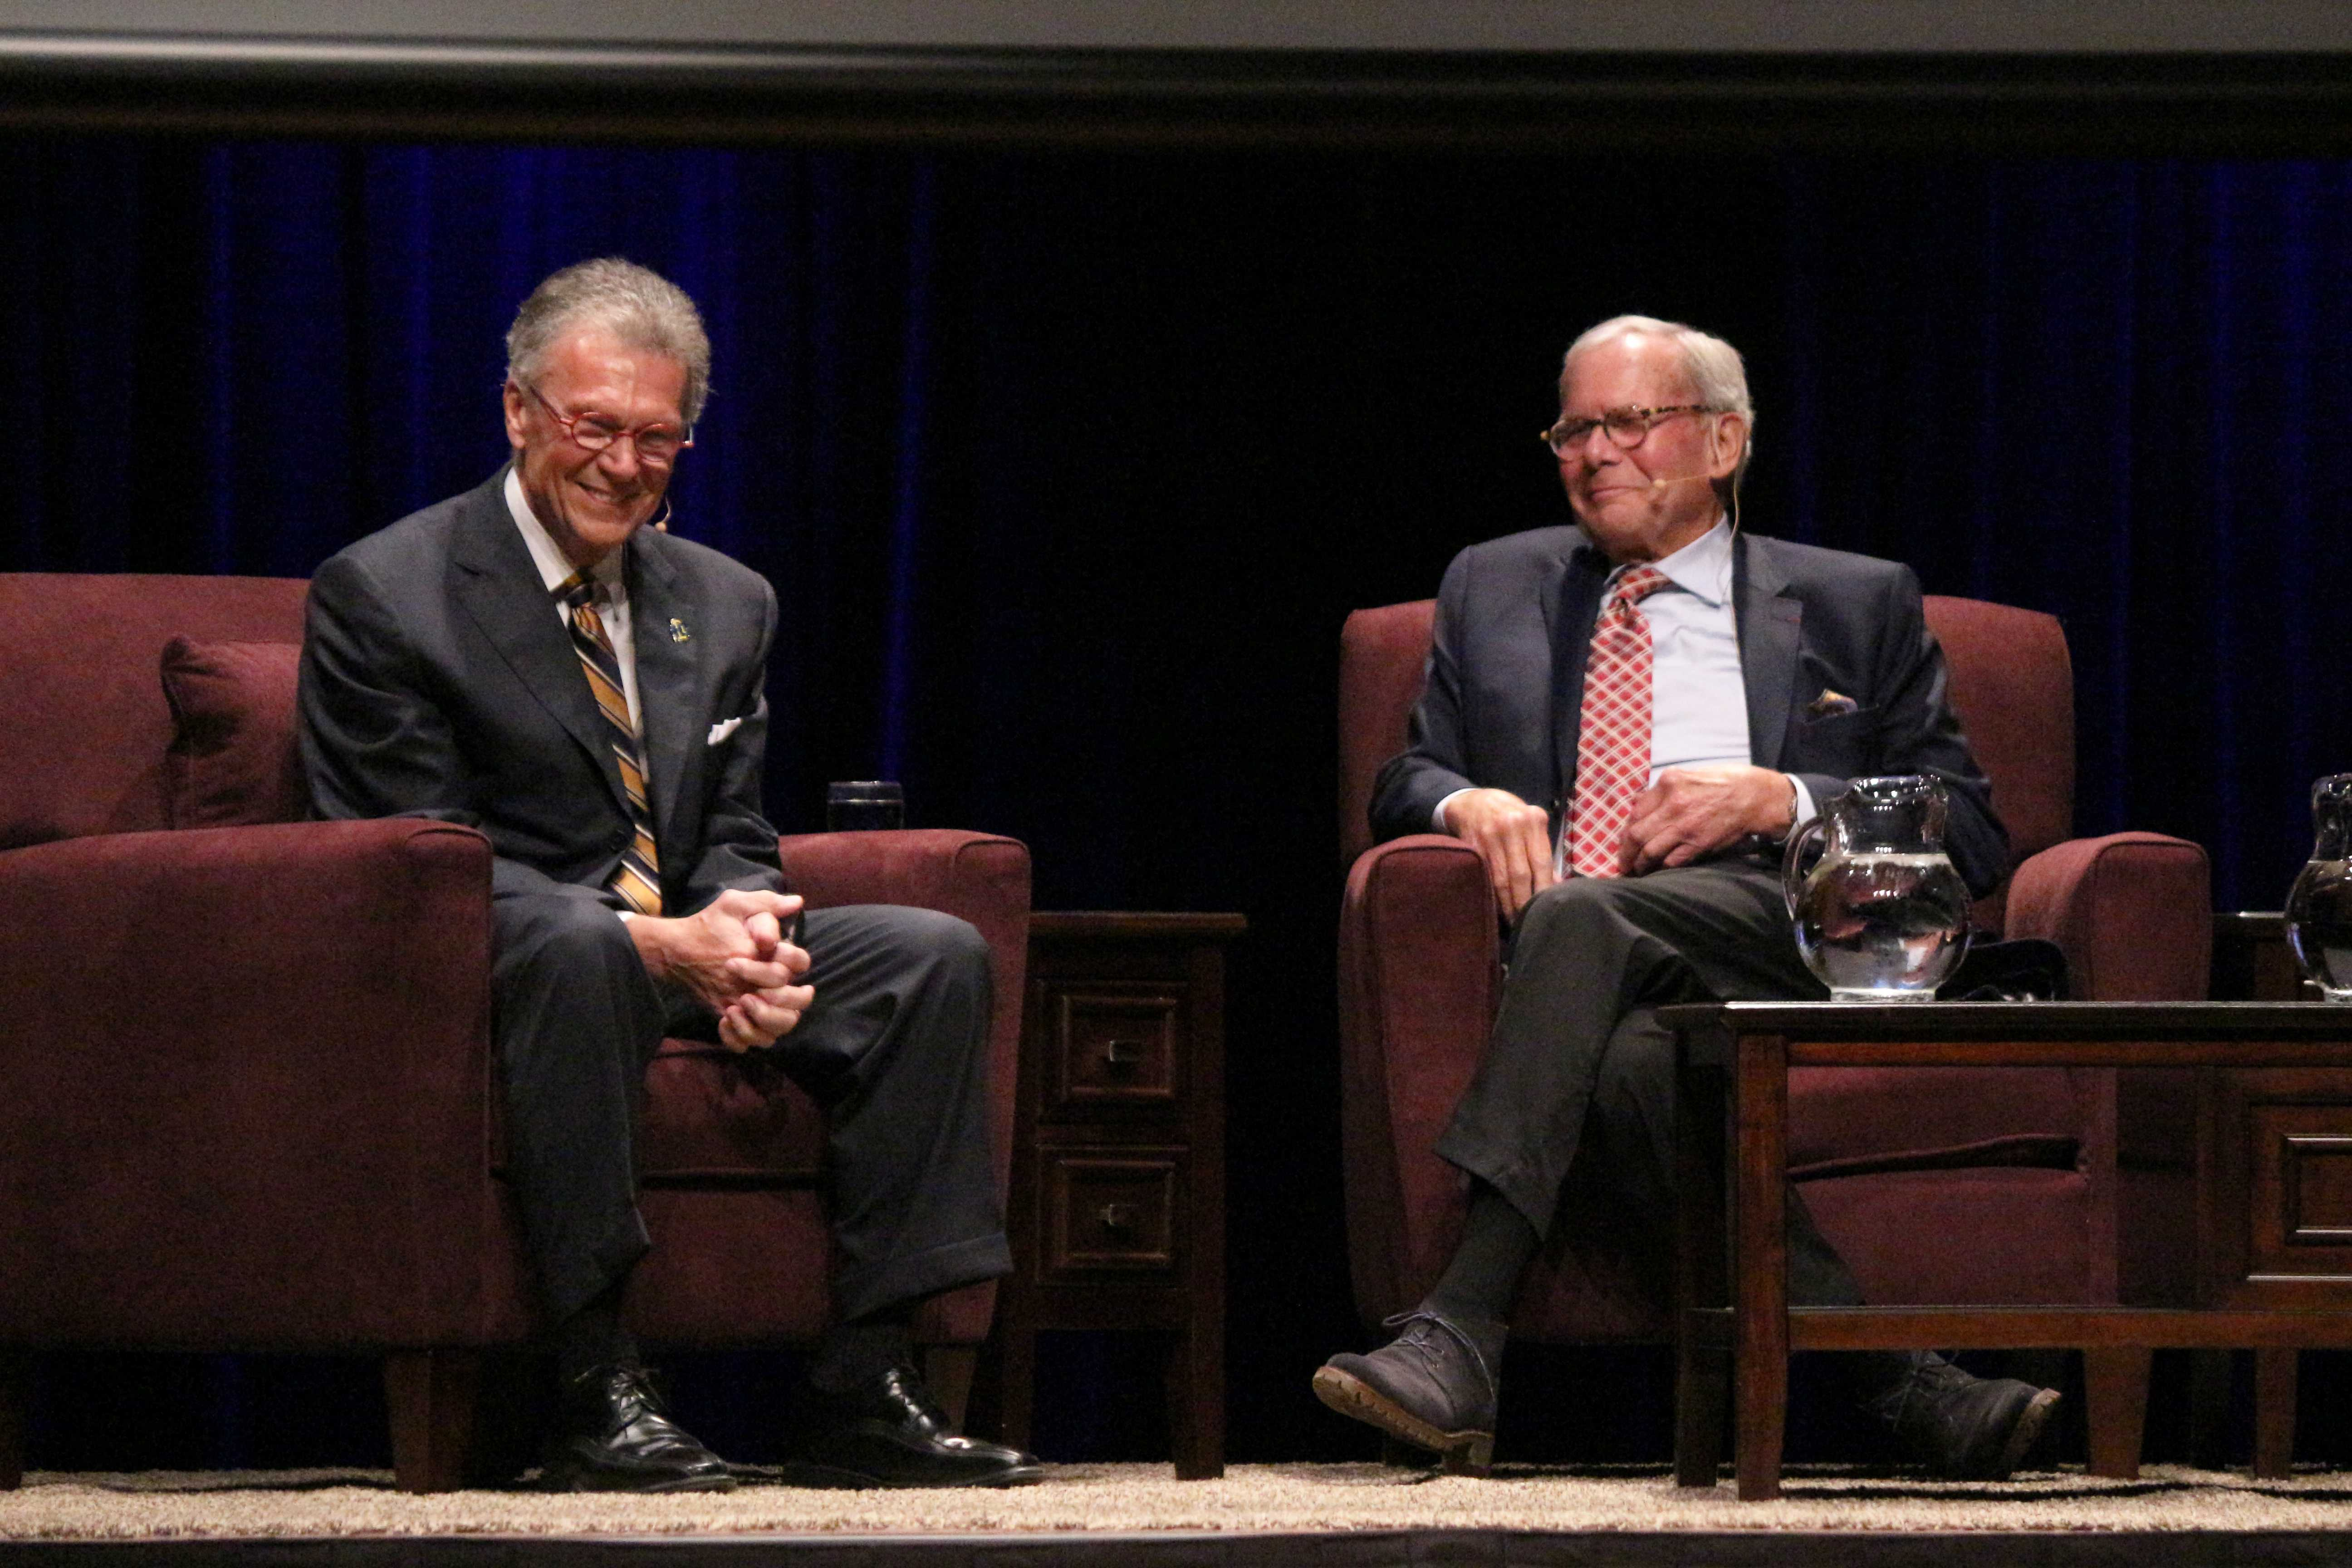 IAN LACK Tom Daschle and Tom Brokaw sit on stage at the Performing Arts Center Oct. 19 during the 2017 Daschle Dialogues. The 2016 election and Donald Trump were the focus.